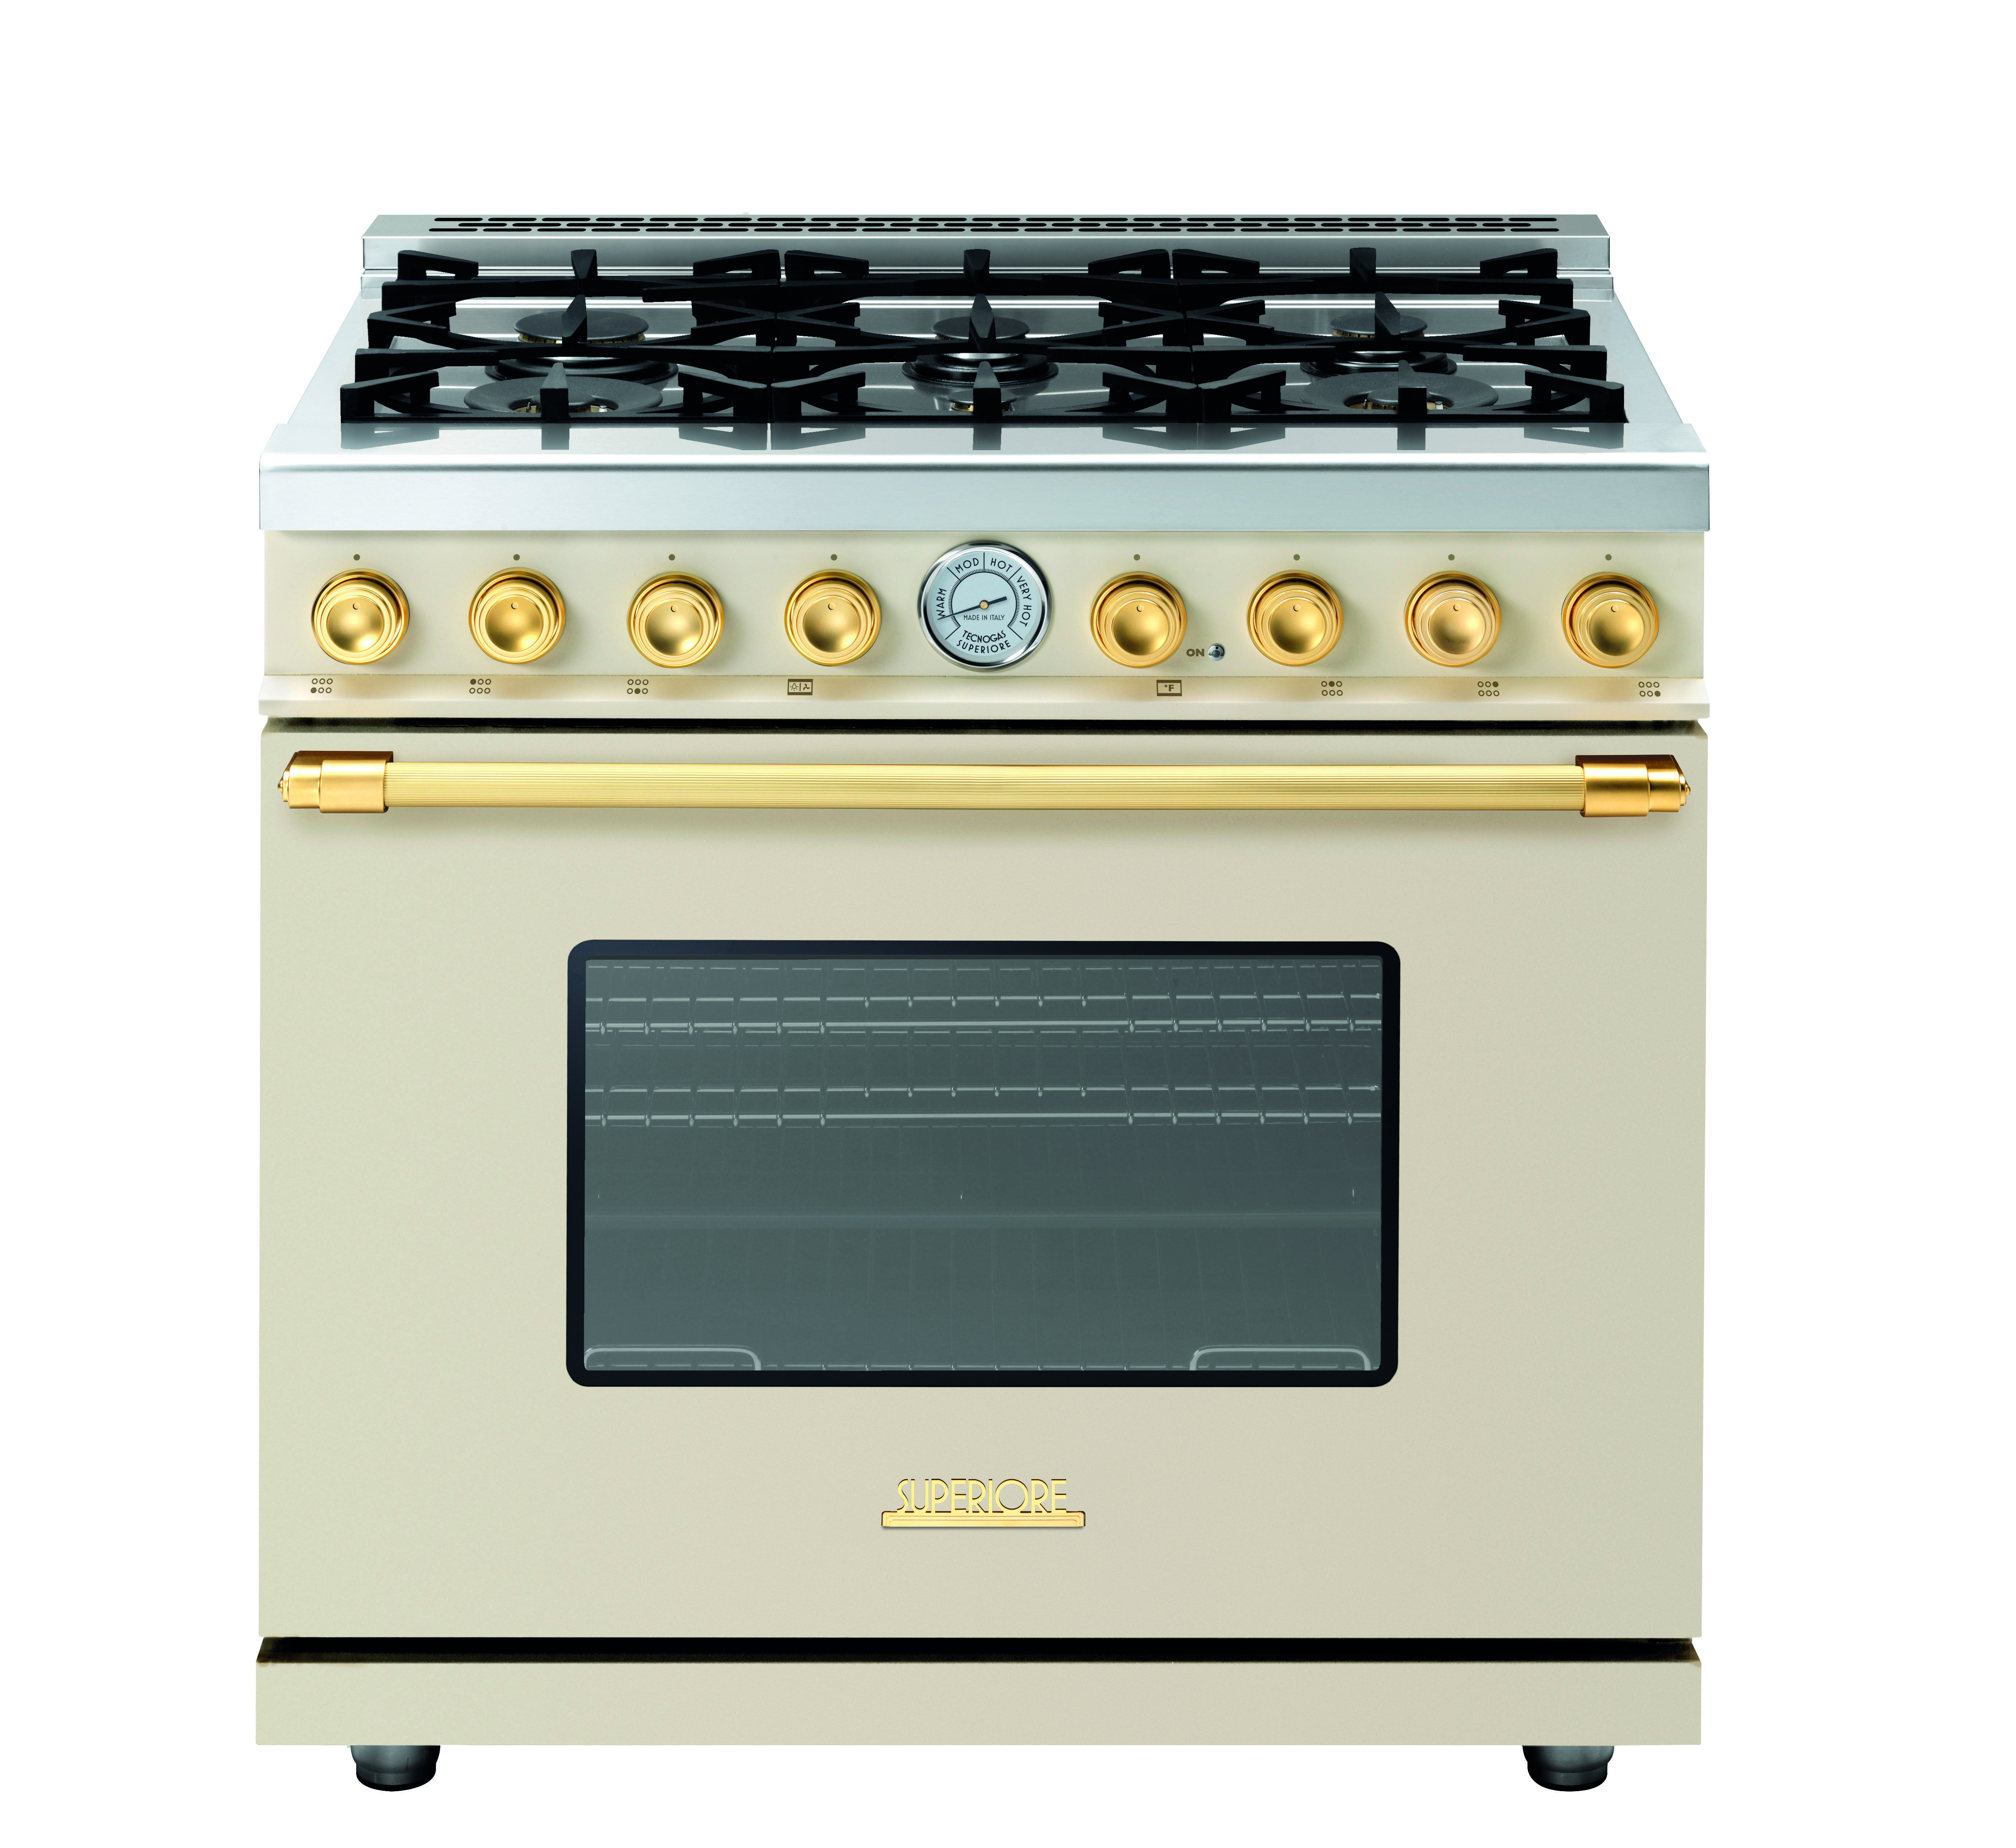 Range Deco 36 Classic Cream Matte Gold Trim 6 Gas Burners Extra Large Gas Oven Equipped With 4 Convection Fans A Elegant Kitchen Design Oven Electric Oven